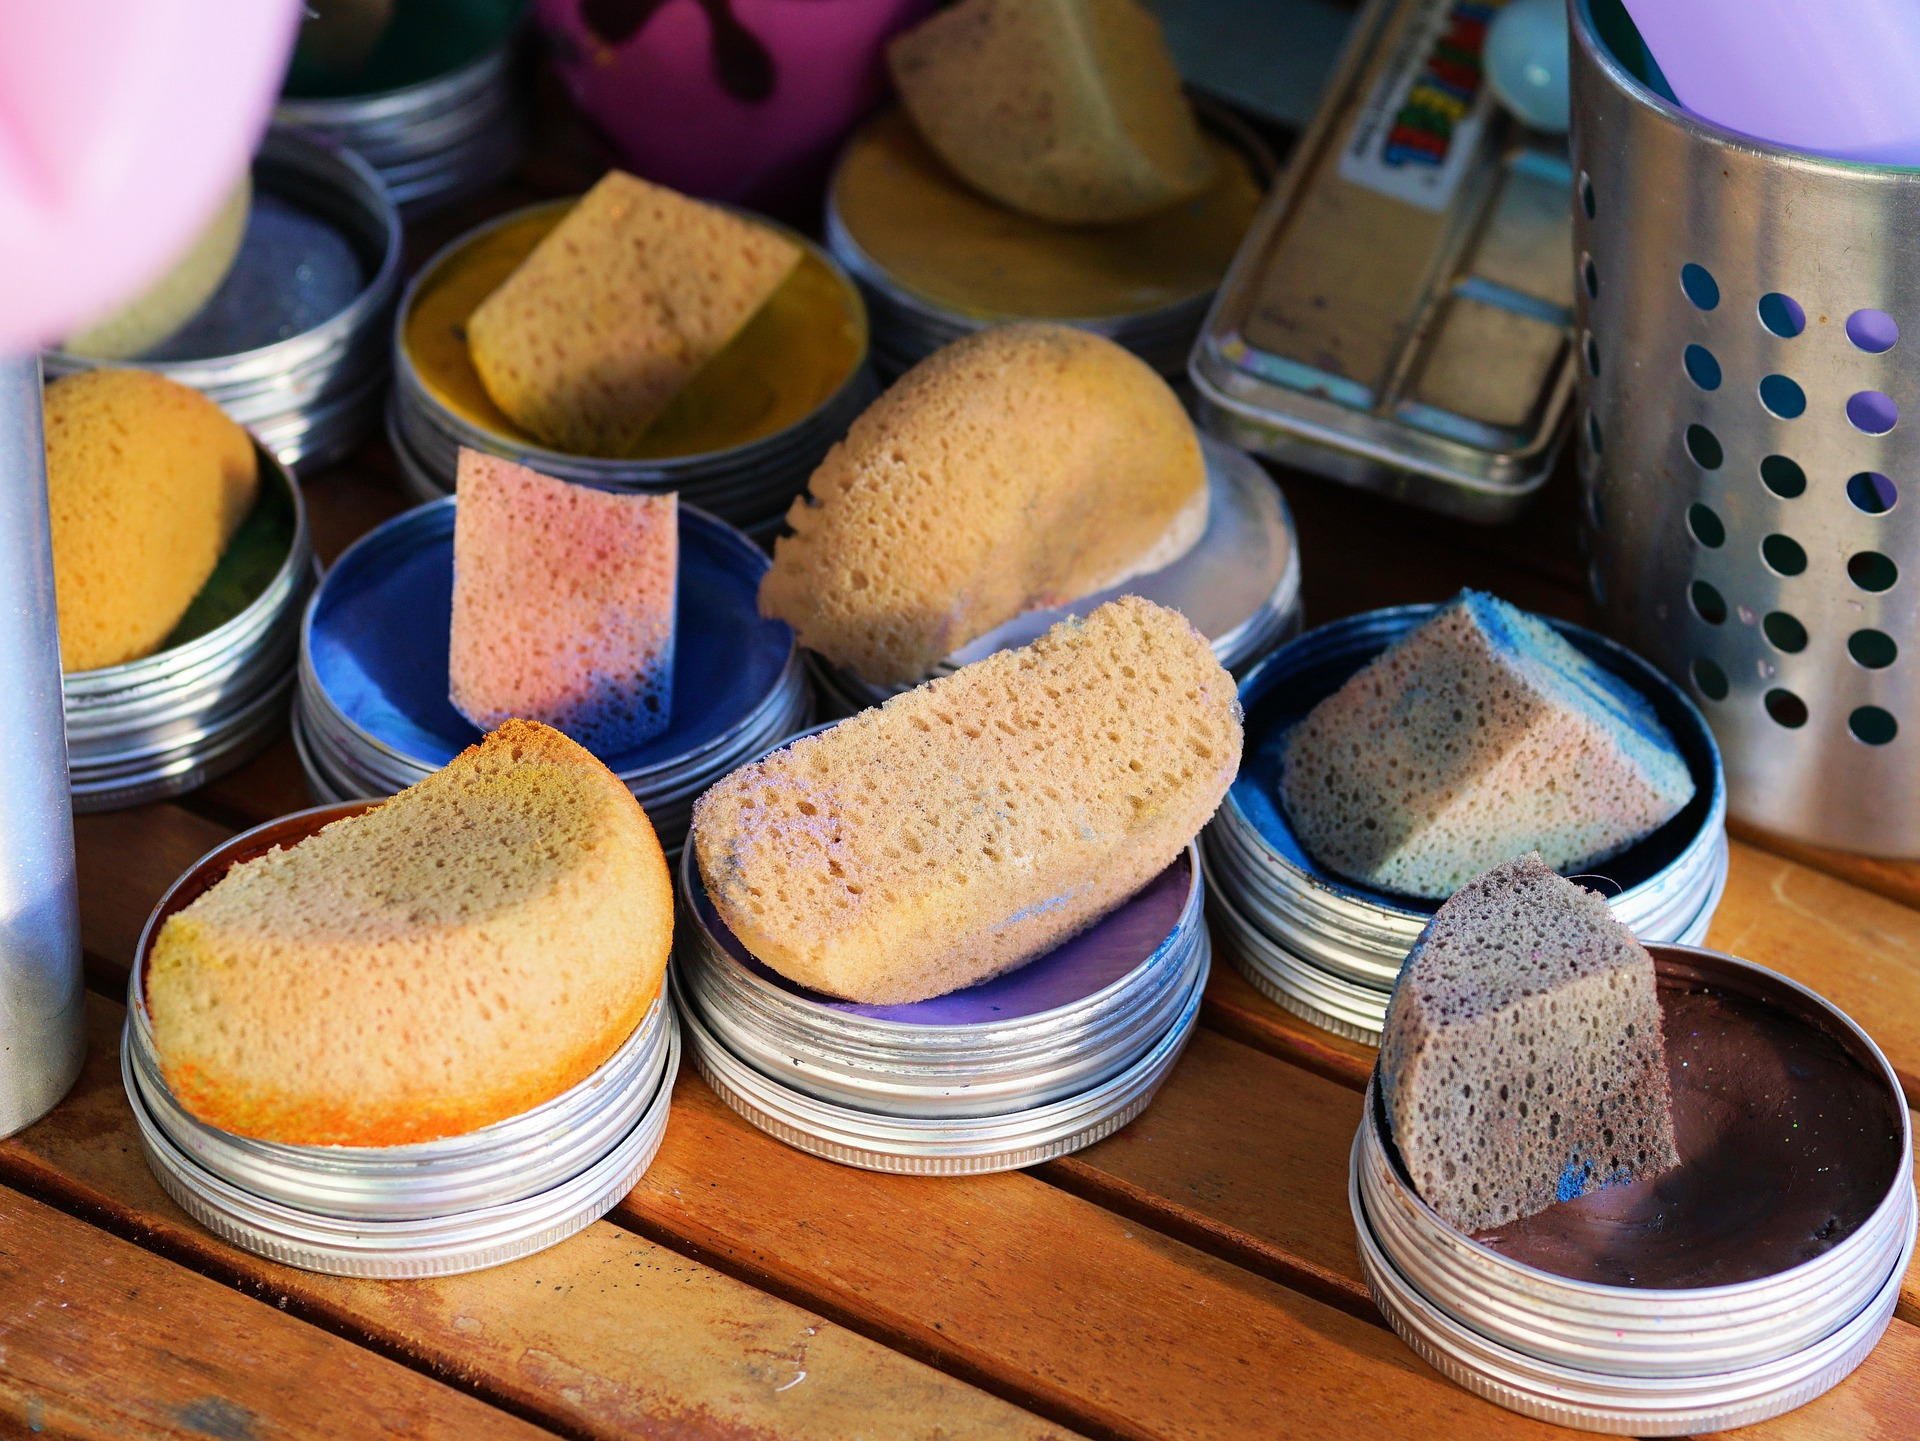 Makeup foundations and the best makeup sponges in different colors